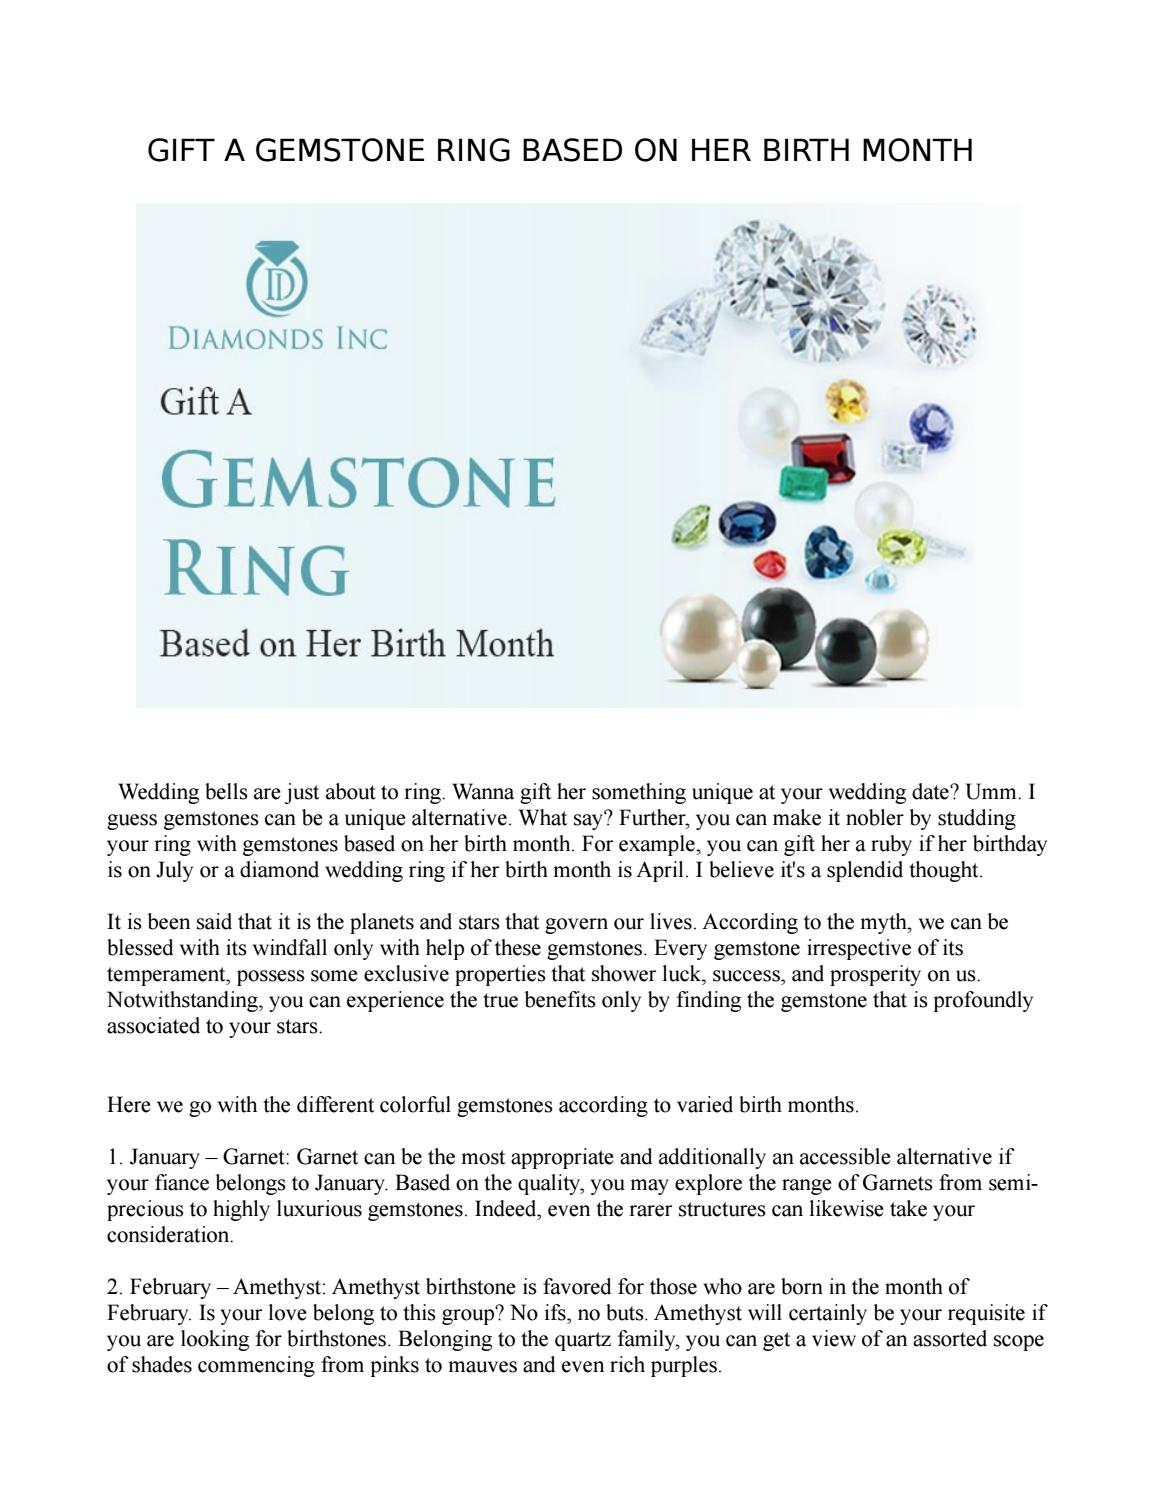 7f56609f925 GIFT A GEMSTONE RING BASED ON HER BIRTH MONTH by Diamonds Inc - issuu